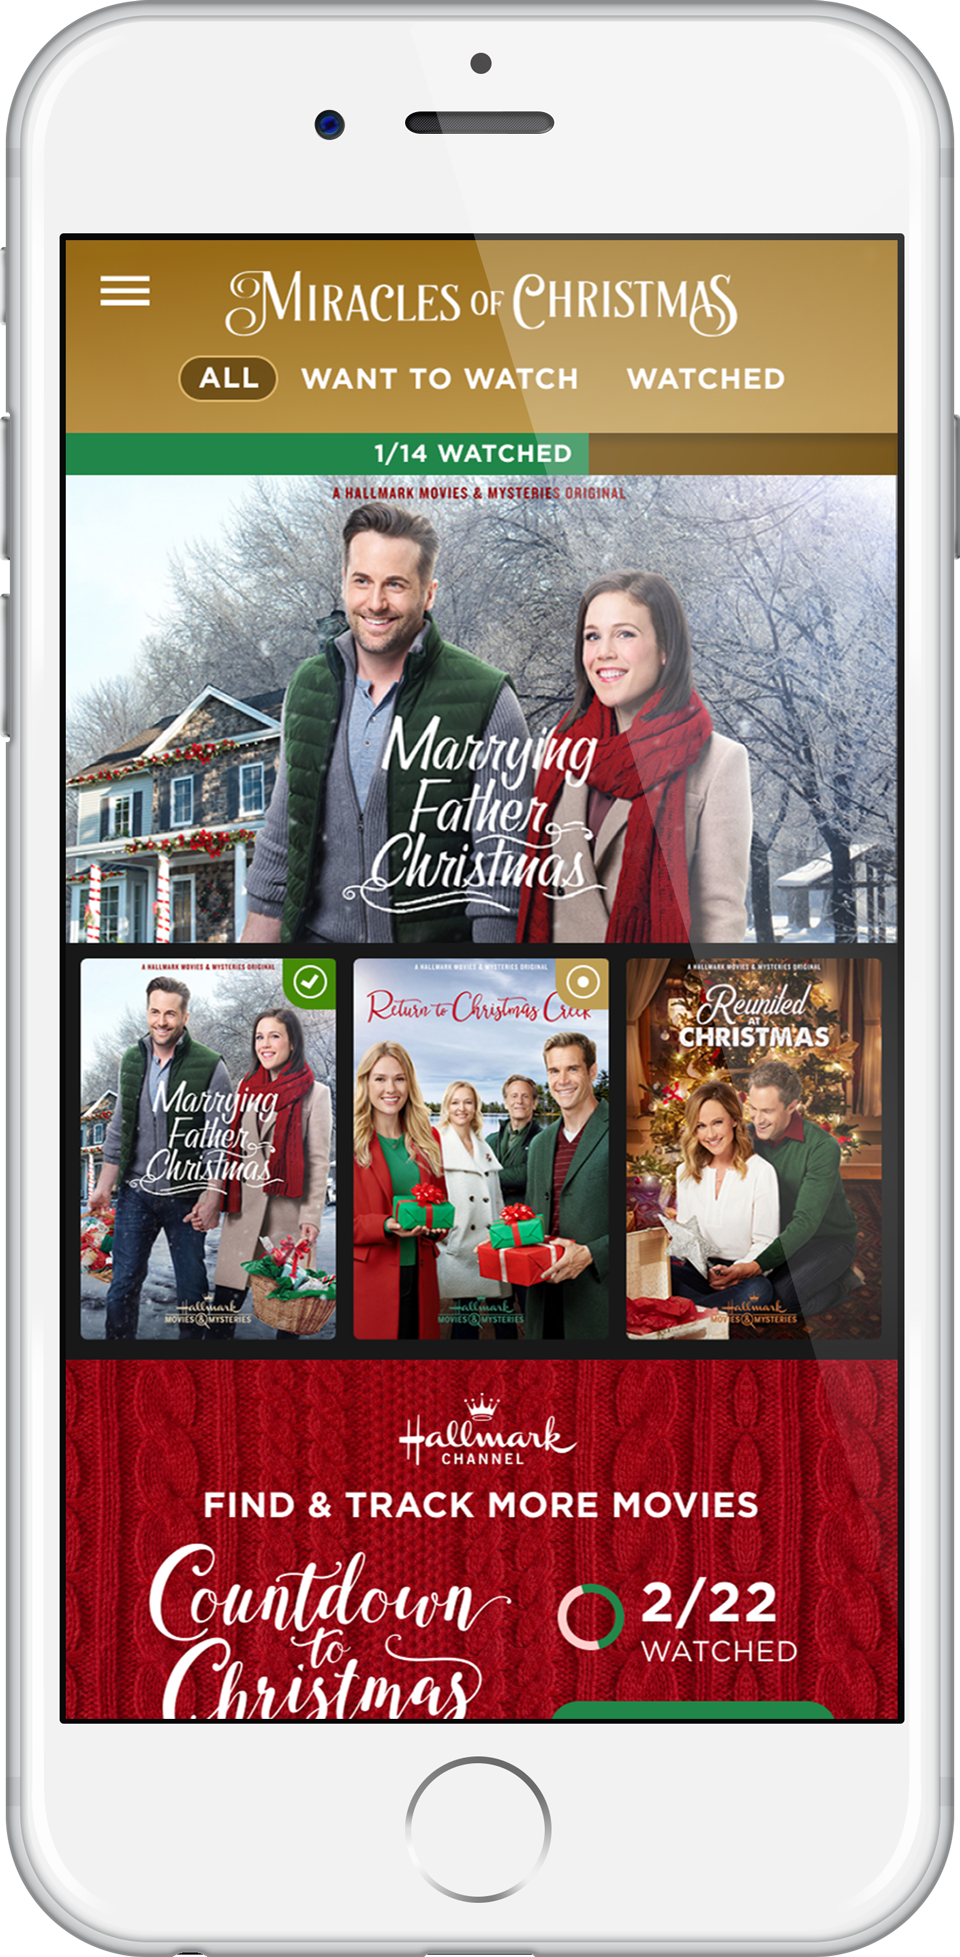 Hallmark's Countdown to Christmas Movie Checklist App lets holiday movie lovers set alerts so they don't miss any of the festive films.